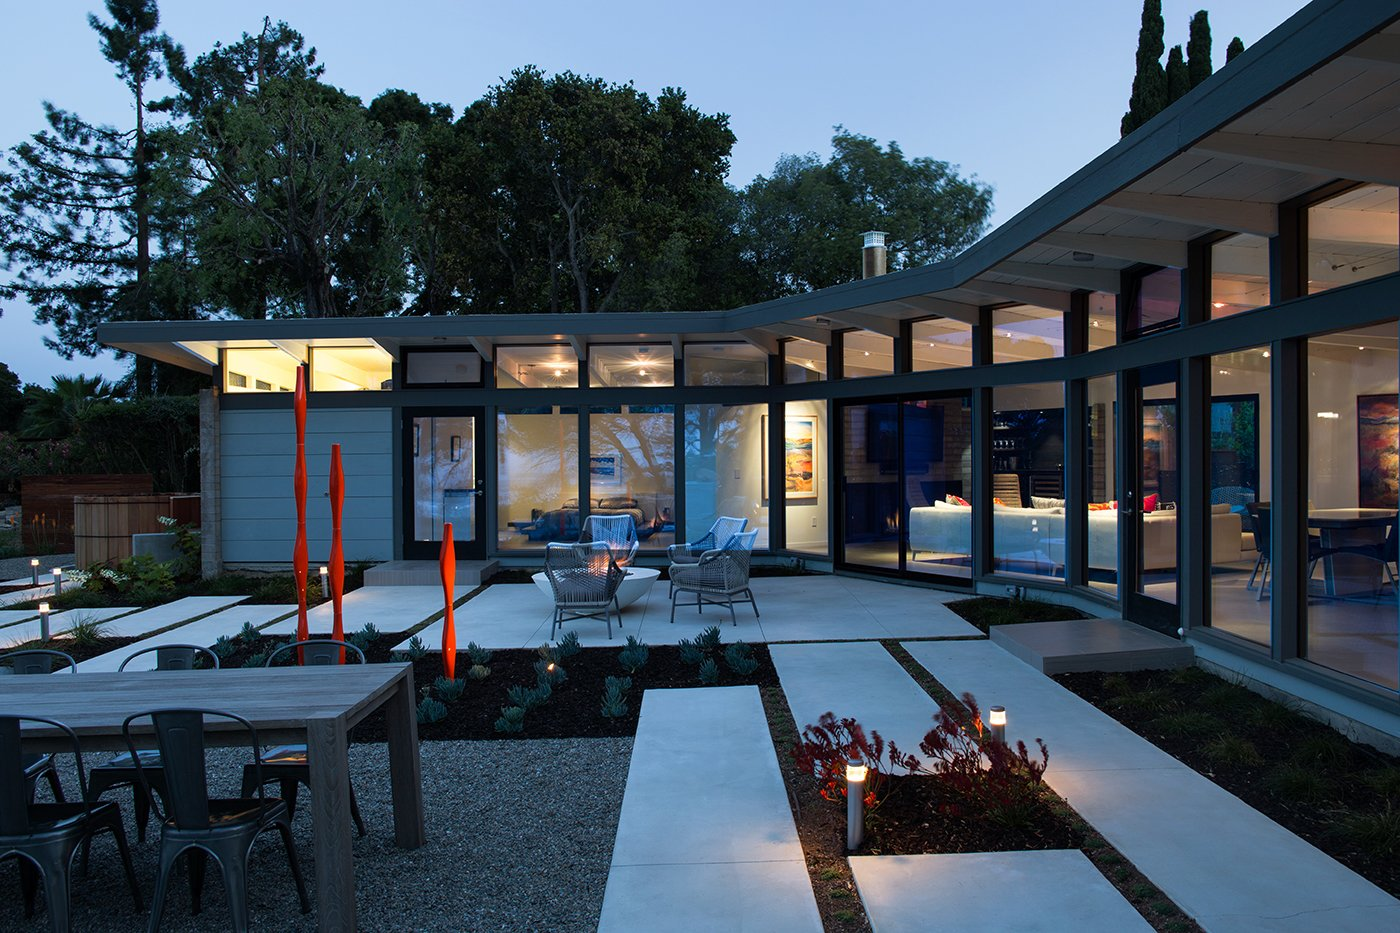 Mid Century Modern View House   Klopf Architecture, Outer Space Landscape Architects, and Flegels Construction updated a classical 1950s original mid-century modern house designed by the late Frank Lloyd Wright apprentice Ellis Jacobs. Klopf Architecture pushed the original design intent to make the house more open and uniform from space to space, while improving energy efficiency, capitalizing more on the already incredible views, improving the flow of spaces, providing an outdoor living area, and ratcheting up the quality level of the home in general. The updated custom Mid-Century Modern home is a remodeled single-family house in Redwood City. This 2,000 square foot (plus garage), 3 bedroom, 2 bathroom home is located in the heart of the Silicon Valley.   Klopf Architecture by Klopf Architecture